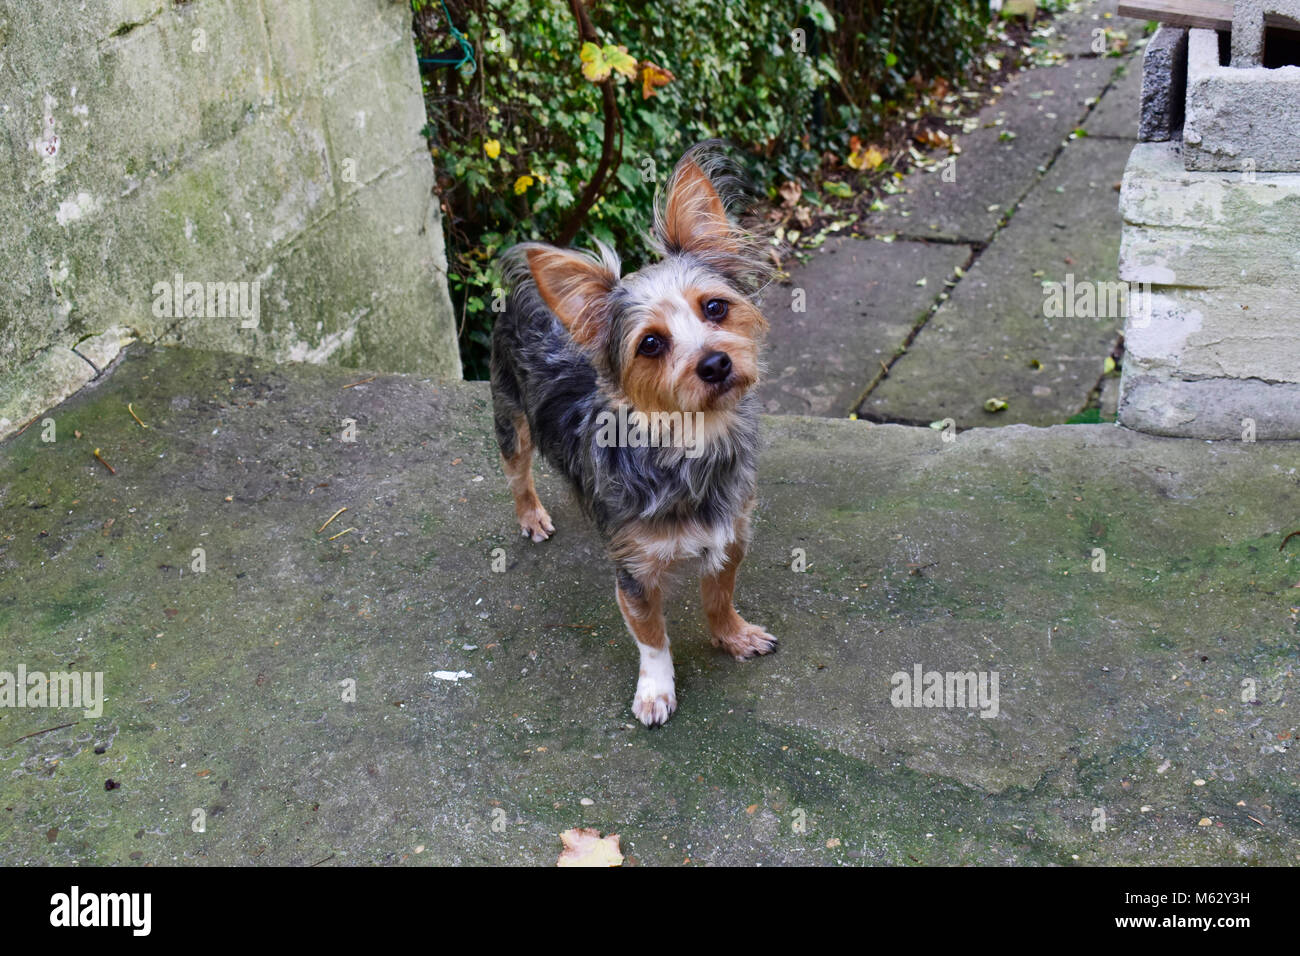 Chihuahua Mixed Yorkshire Terrier Standing And Looking Something On